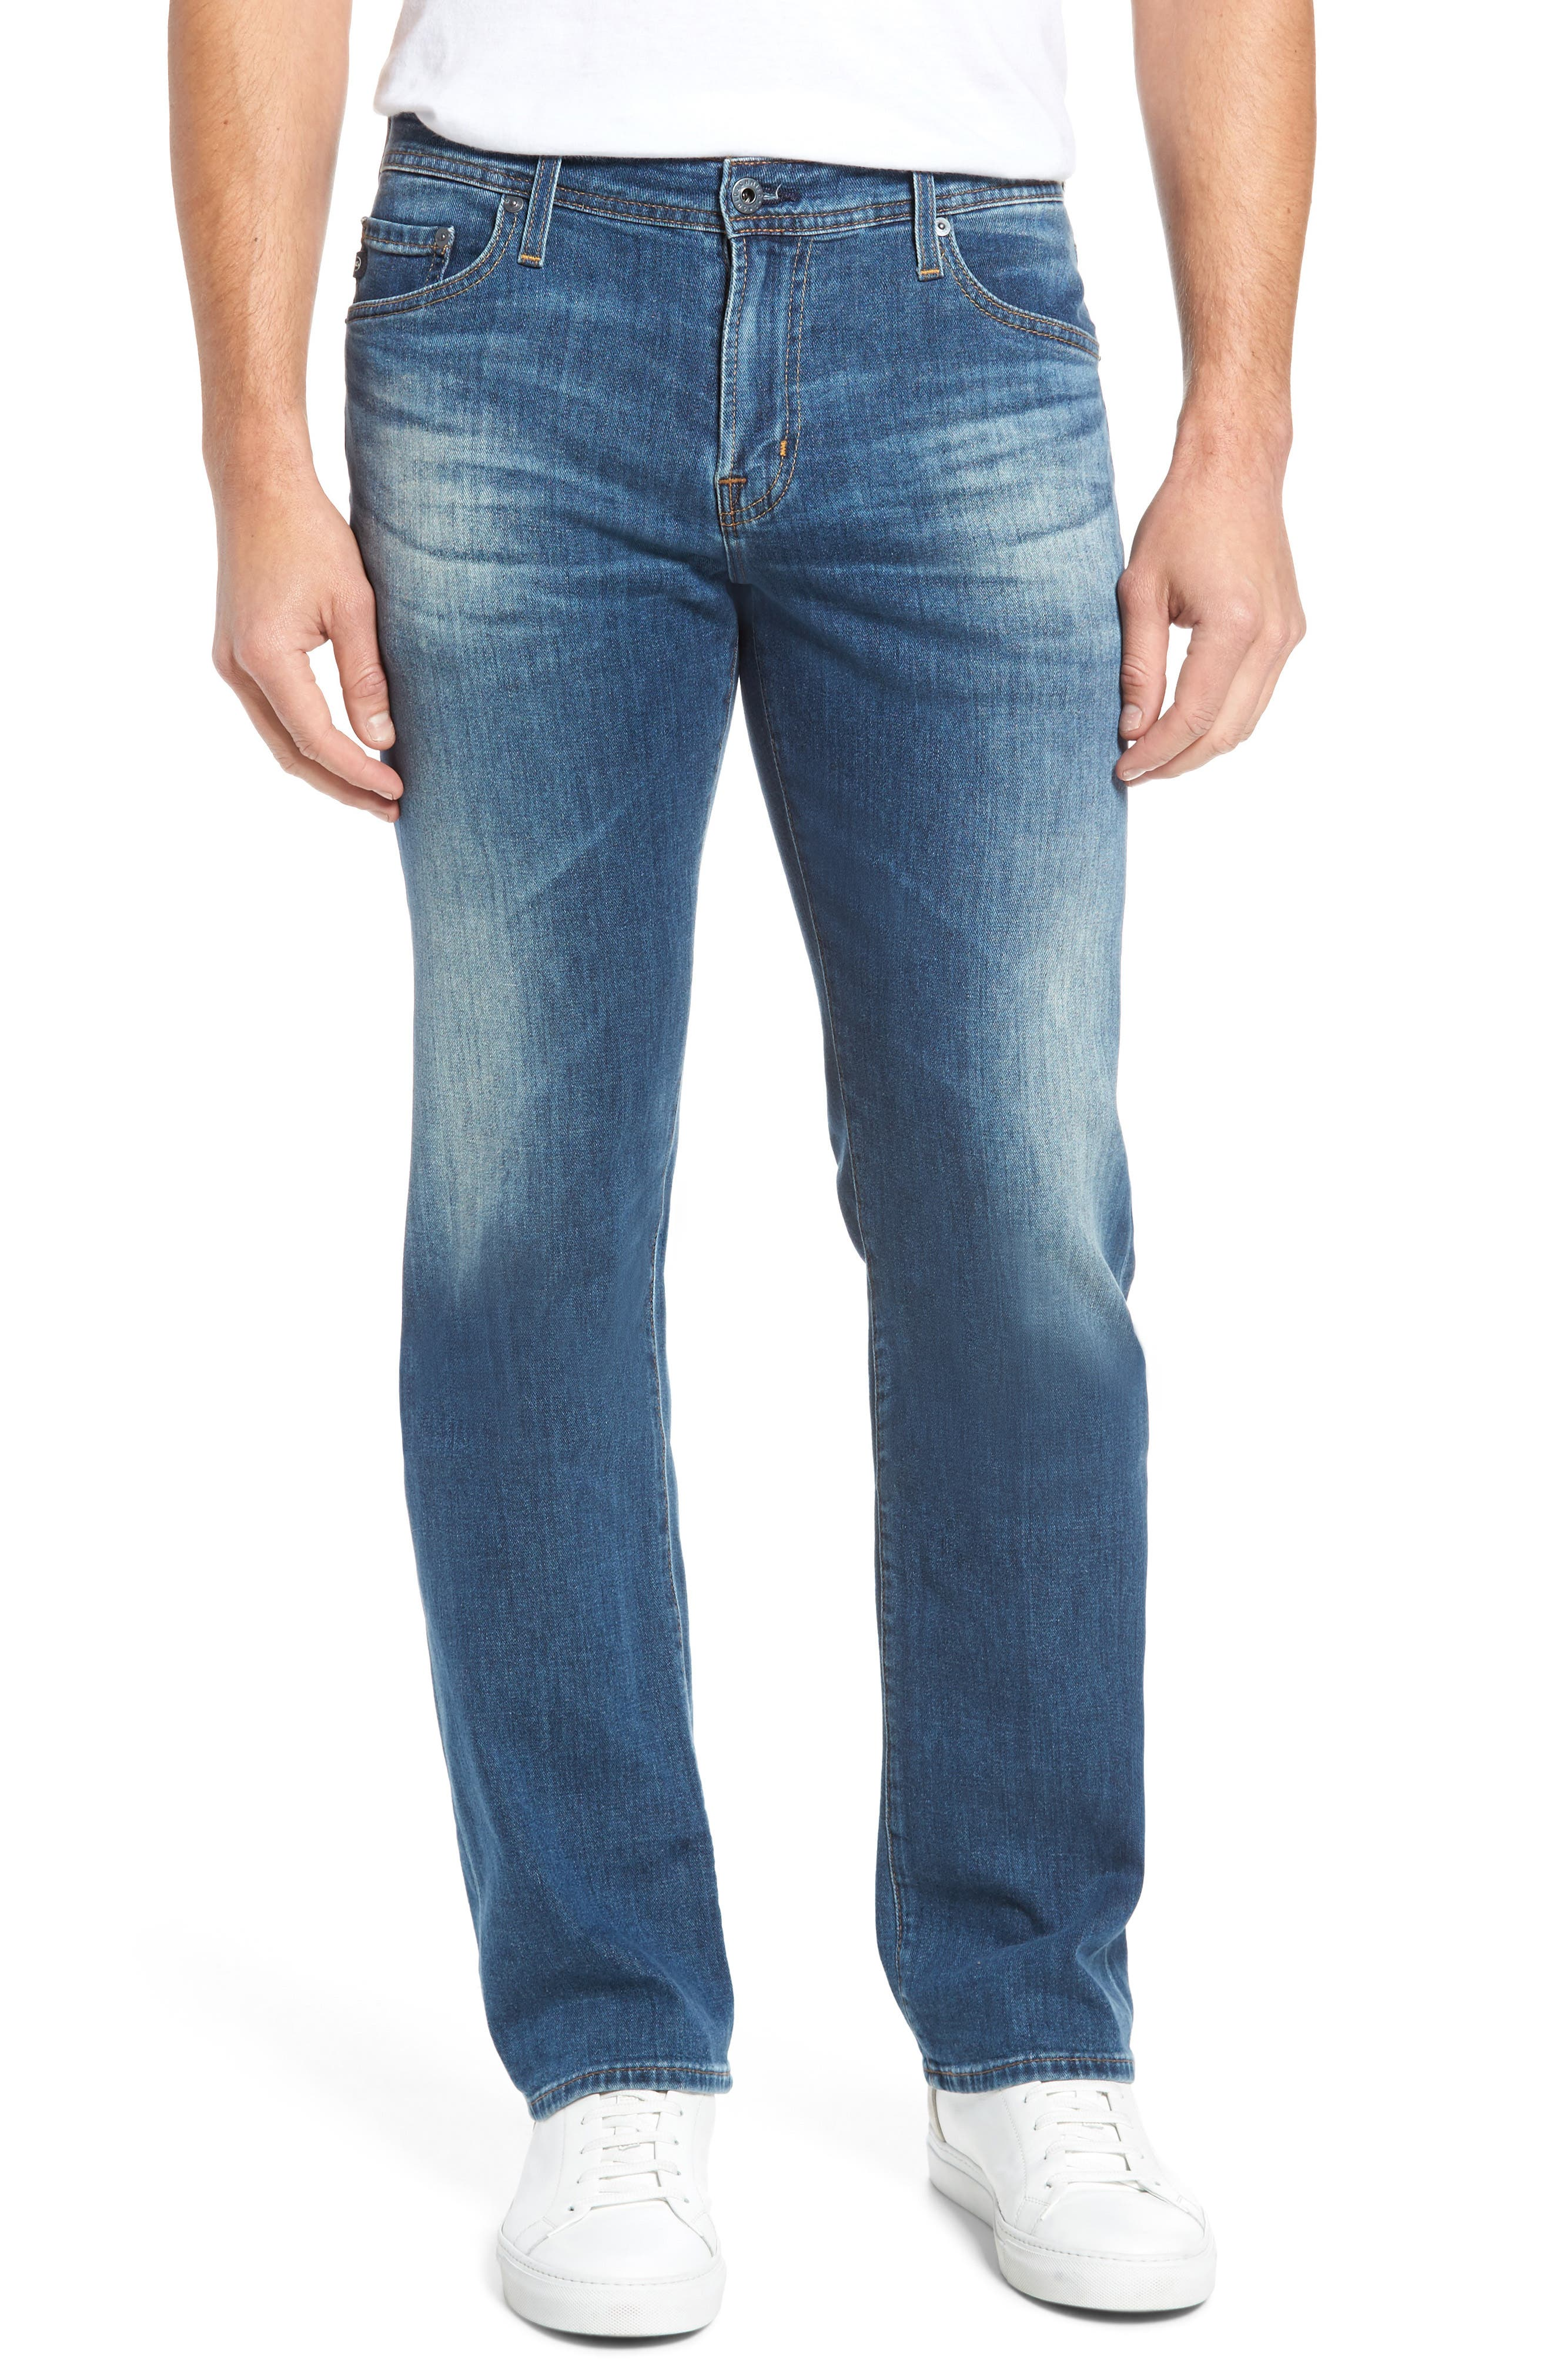 Protégé Relaxed Fit Jeans,                             Main thumbnail 1, color,                             Four Rivers